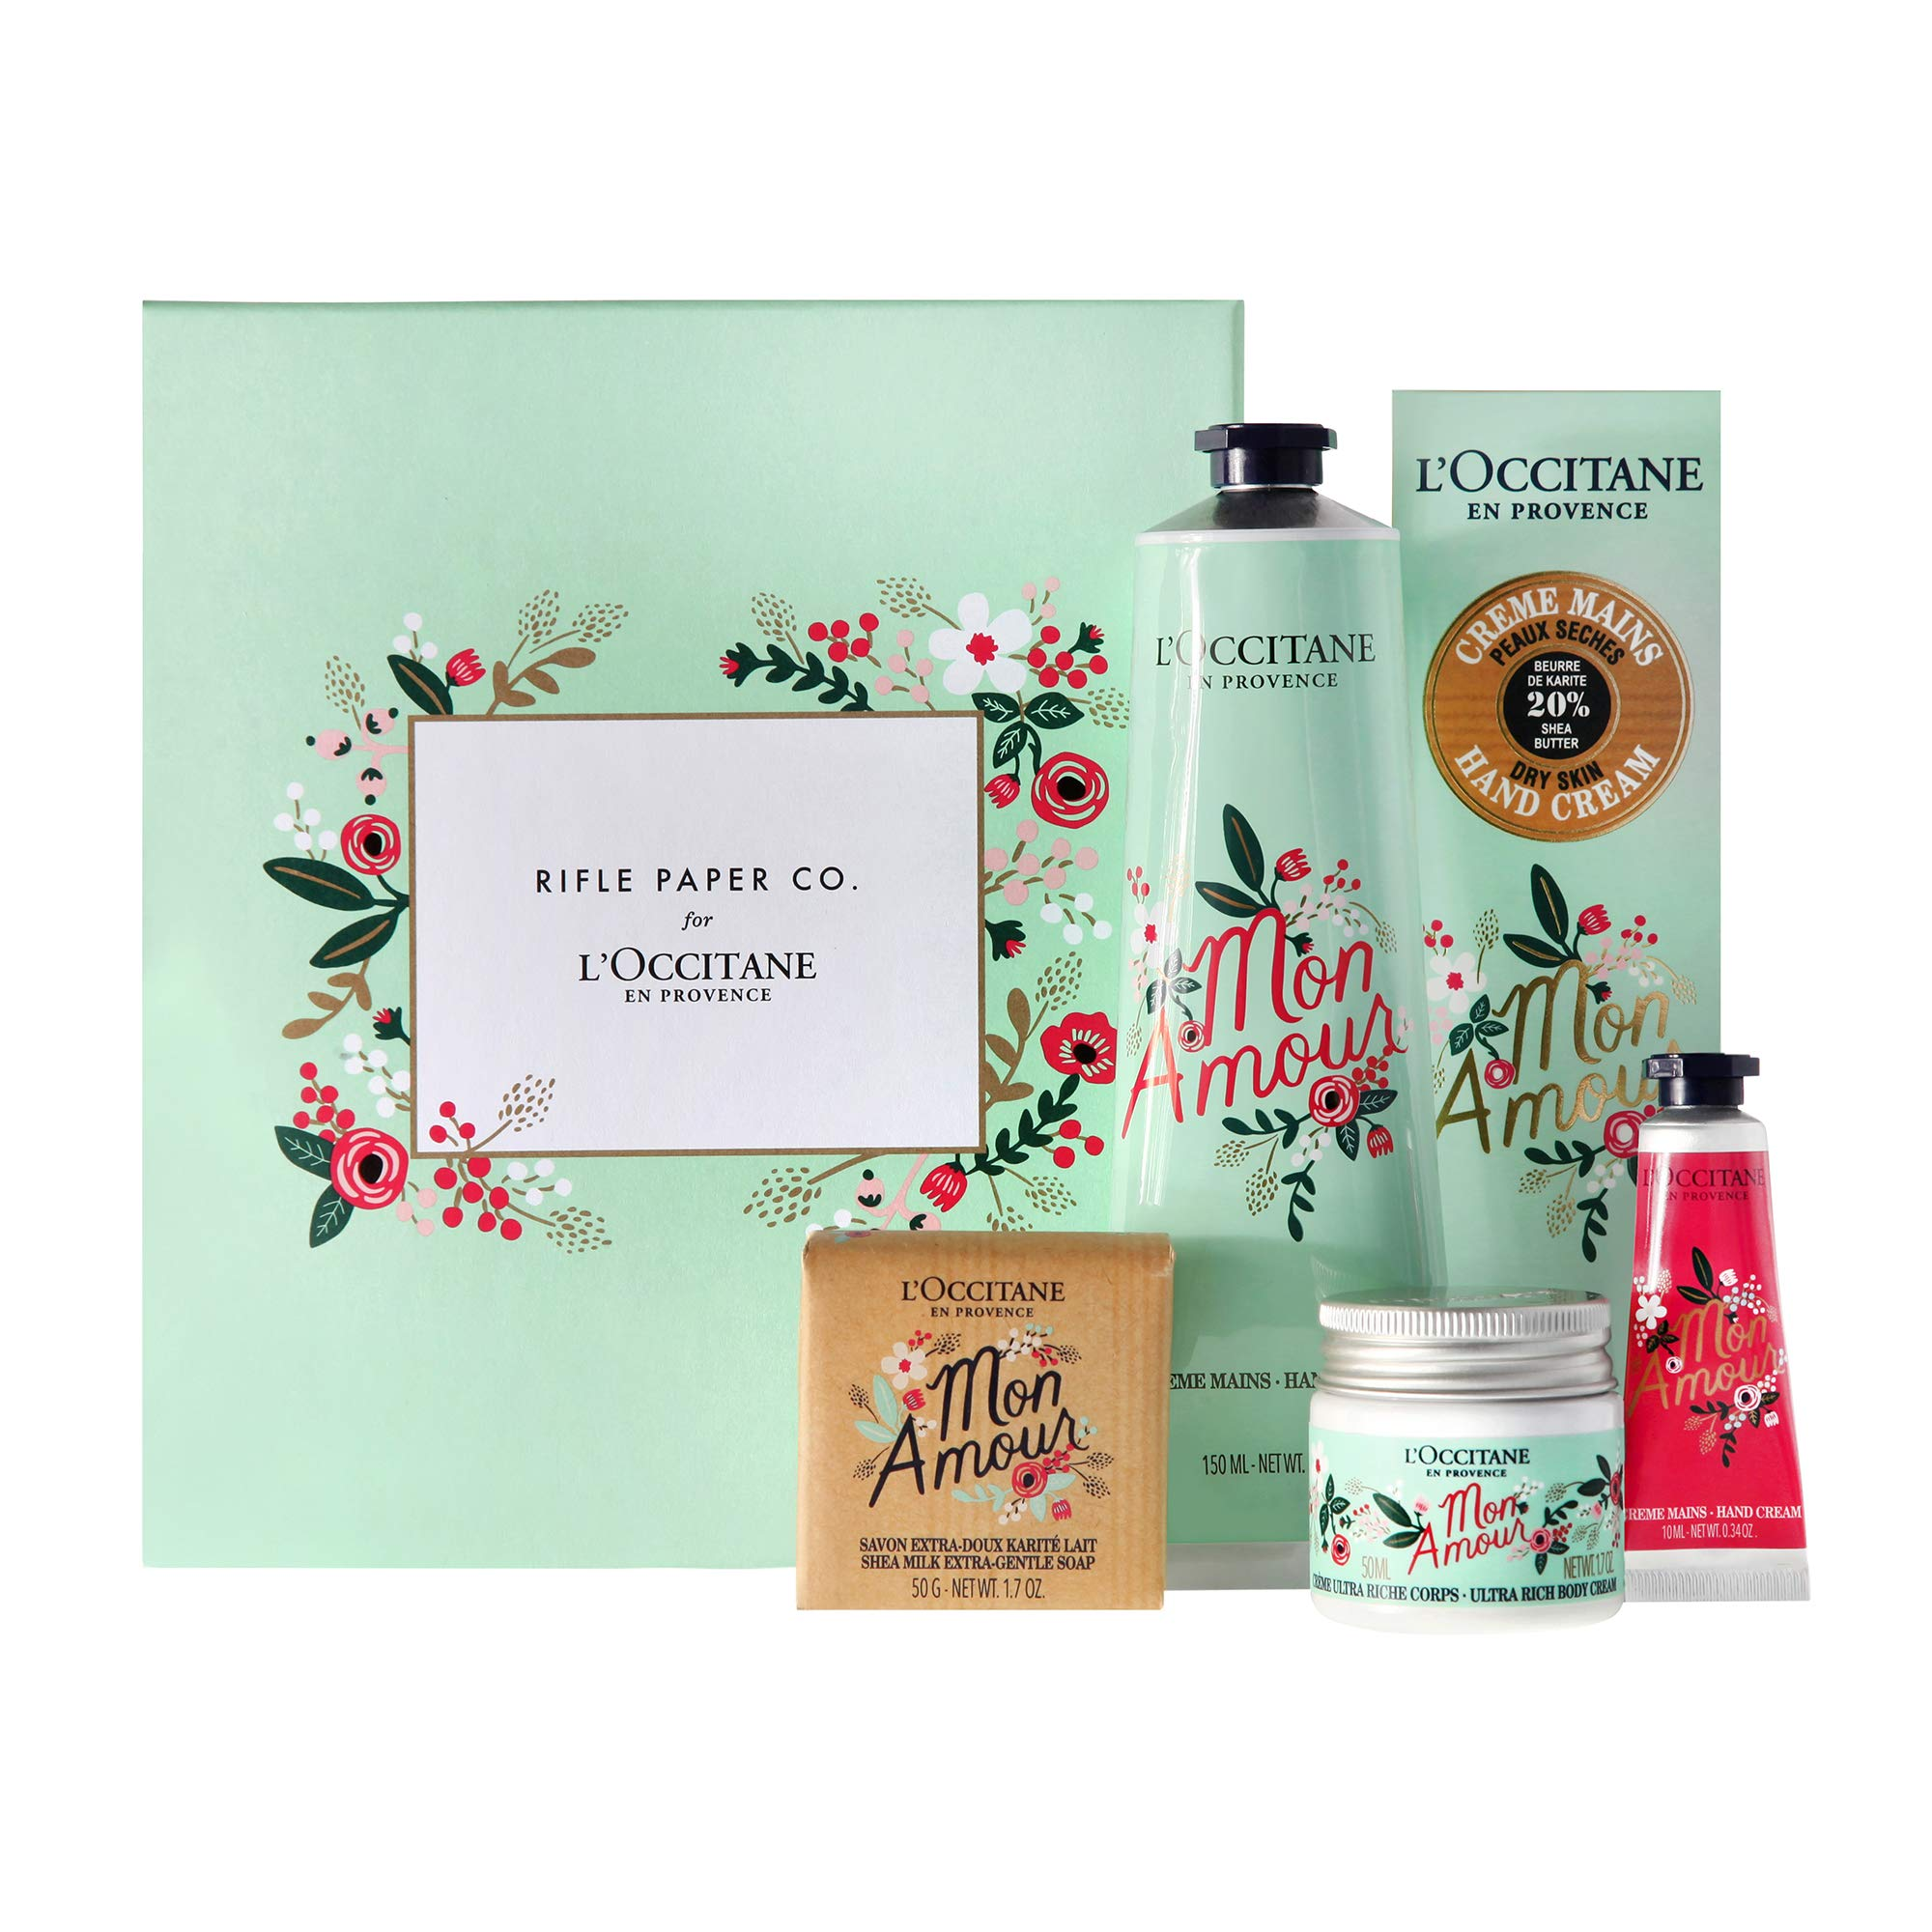 L'Occitane Rifle Paper Co. Shea Butter Favorites Collection, Limited Edition by L'Occitane